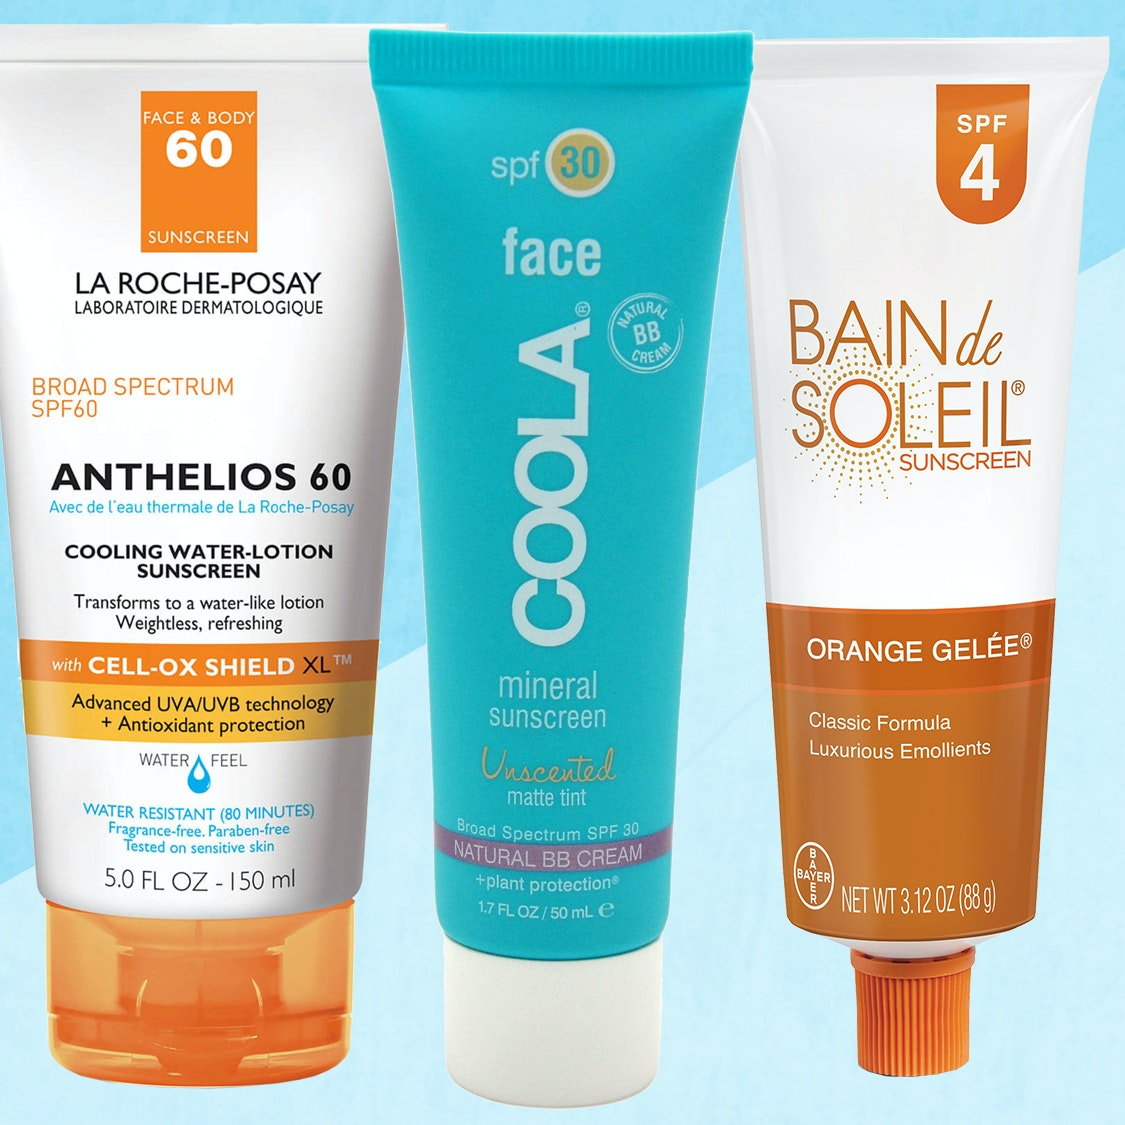 Amazon's Shoppers Have Spoken: These Are the Retailer's Top-Rated Sunscreens